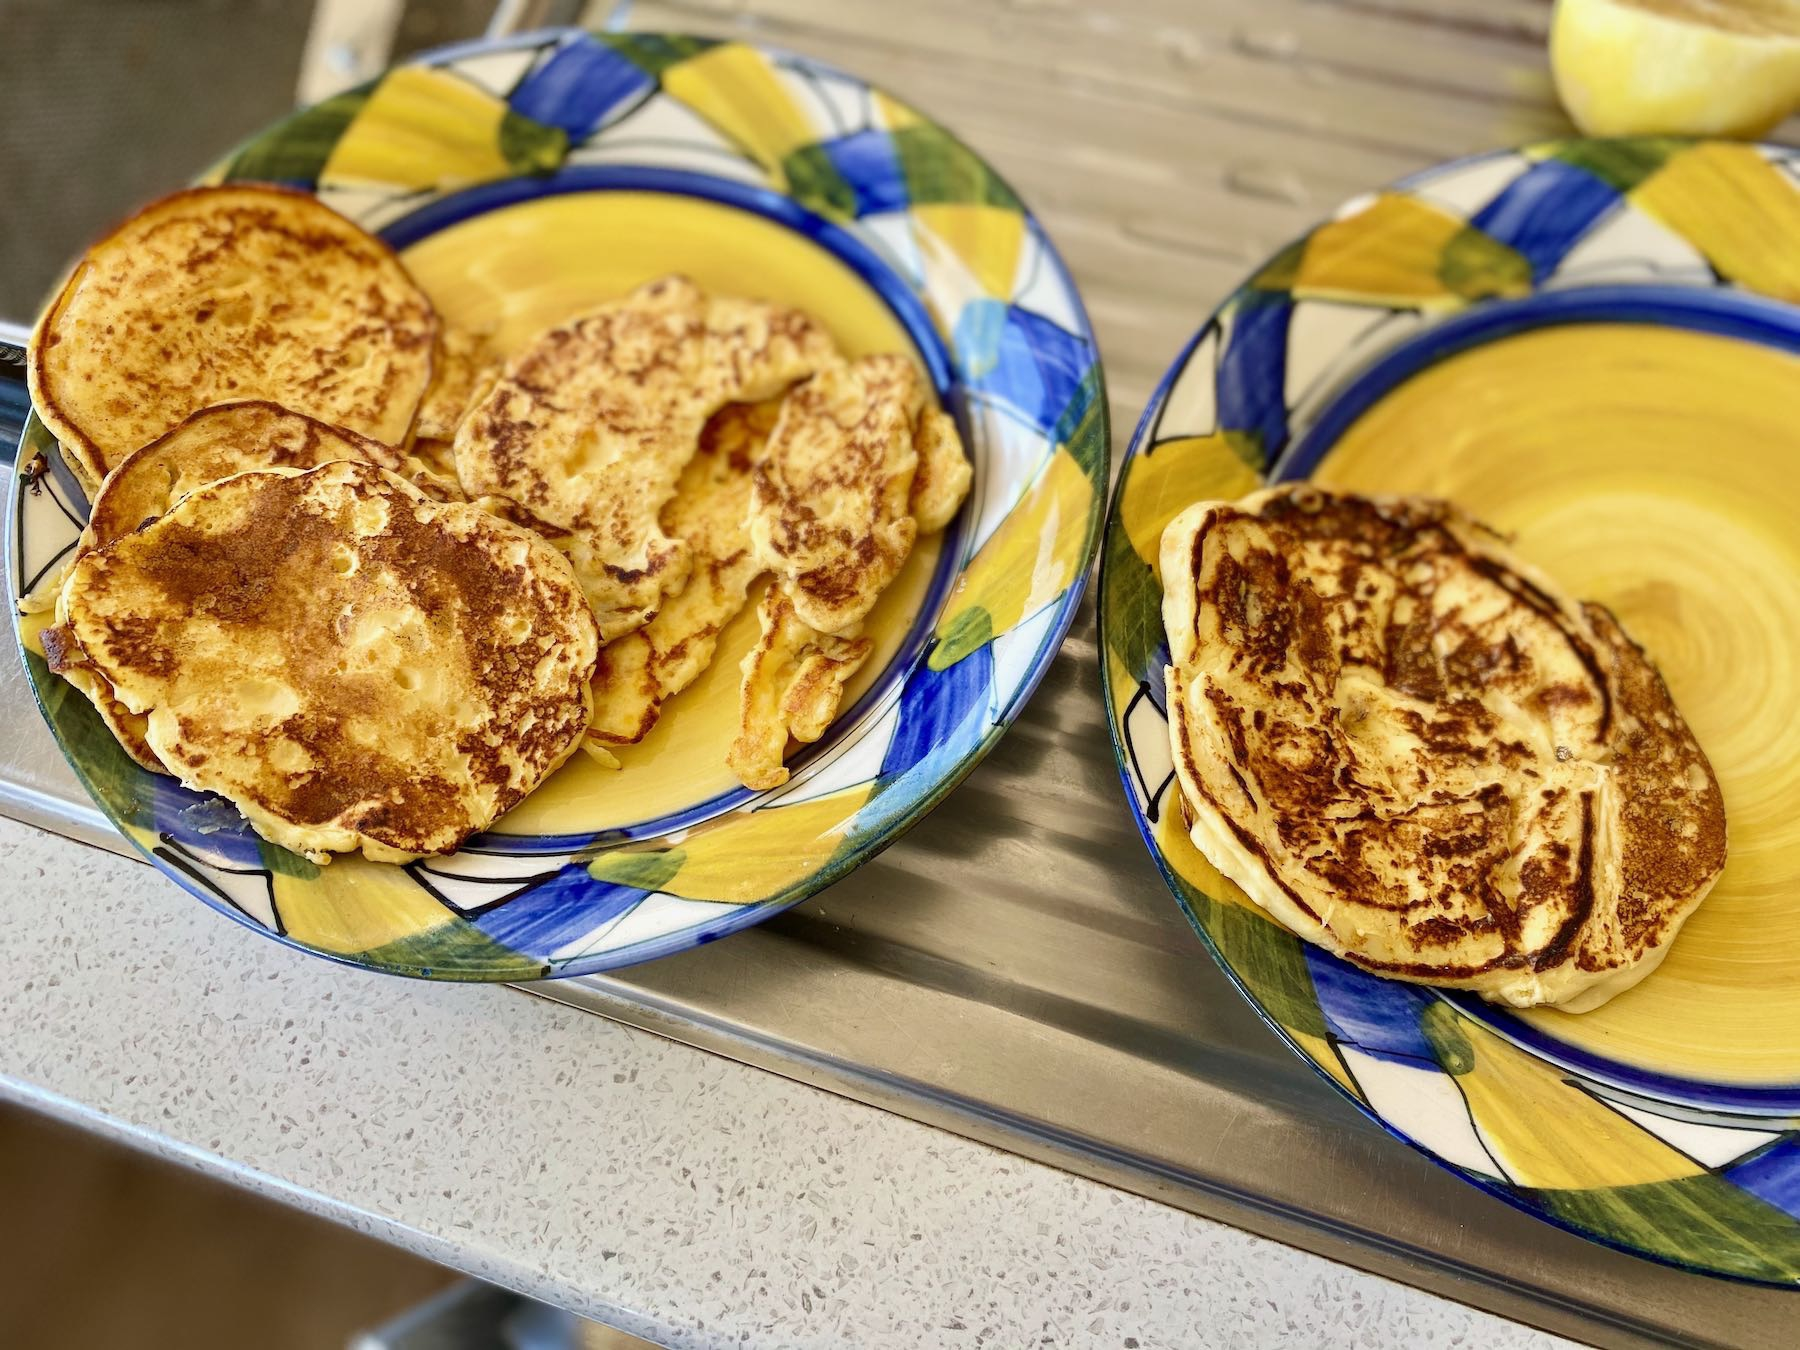 Two plates with pancakes.